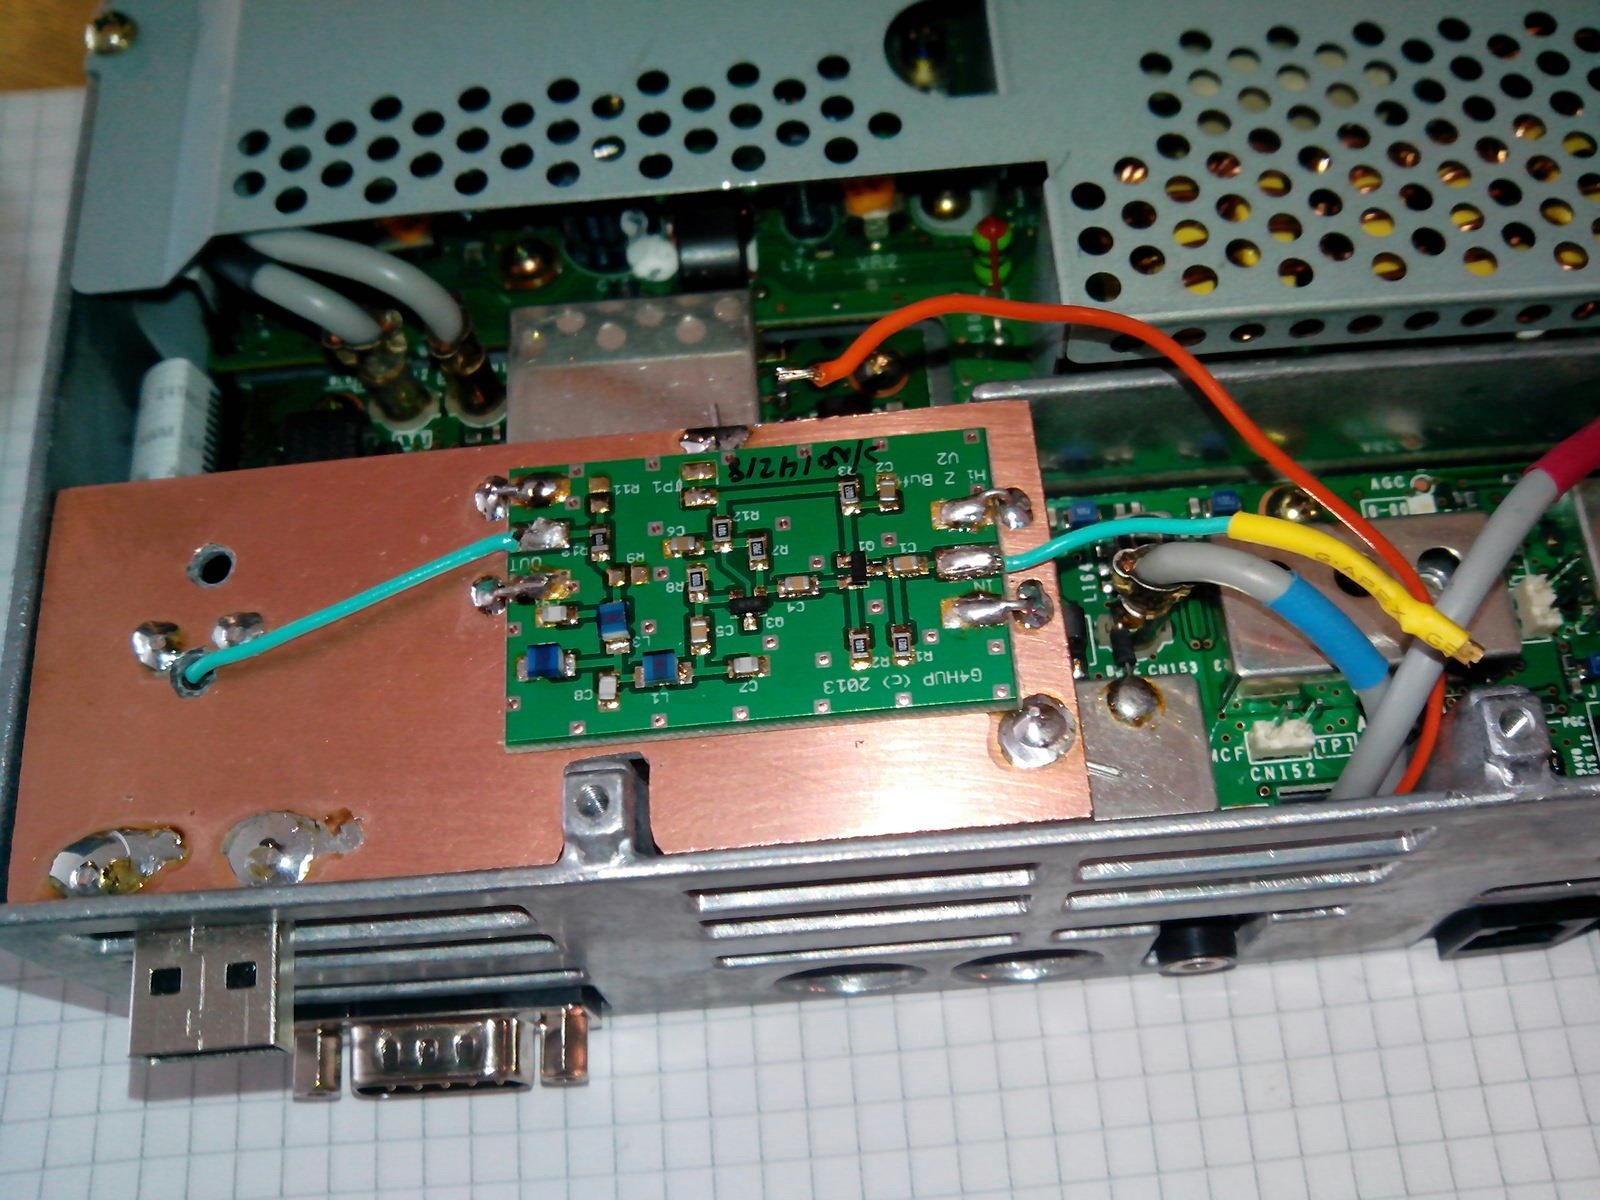 TS480 PAT installation with USB dongle integrated under the PCB - LB6YD